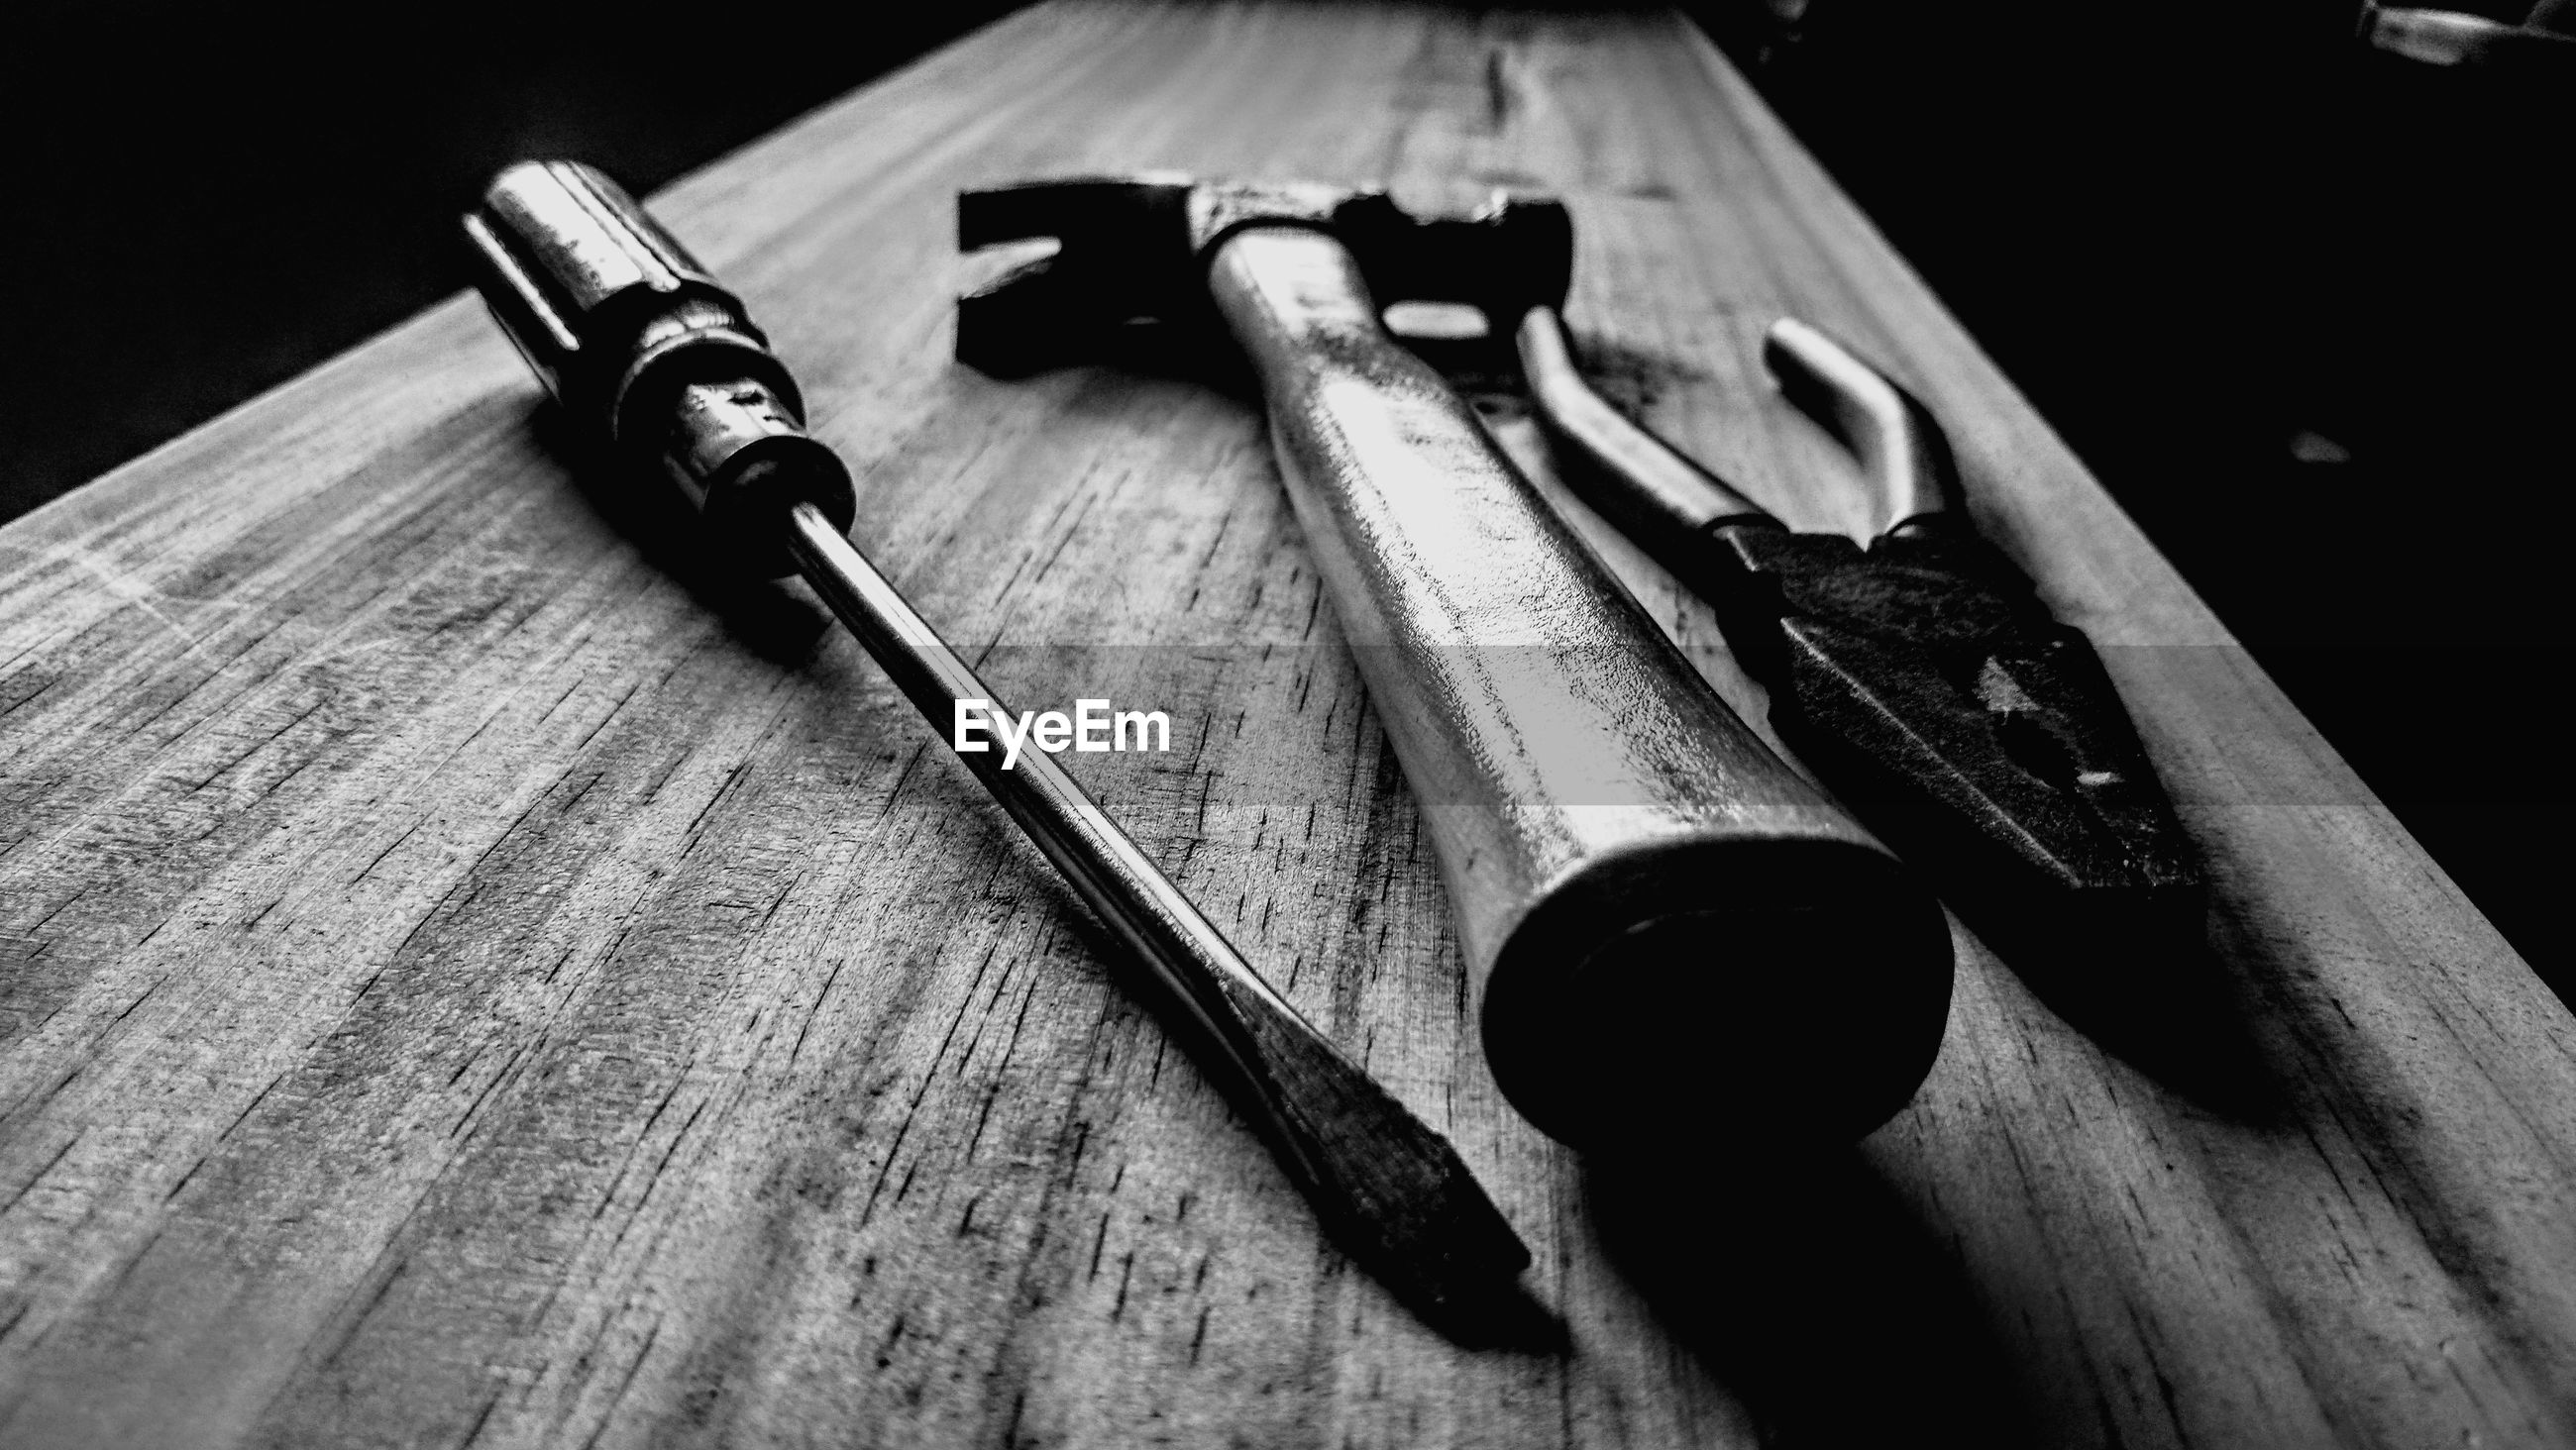 Close-up of tools on wooden table